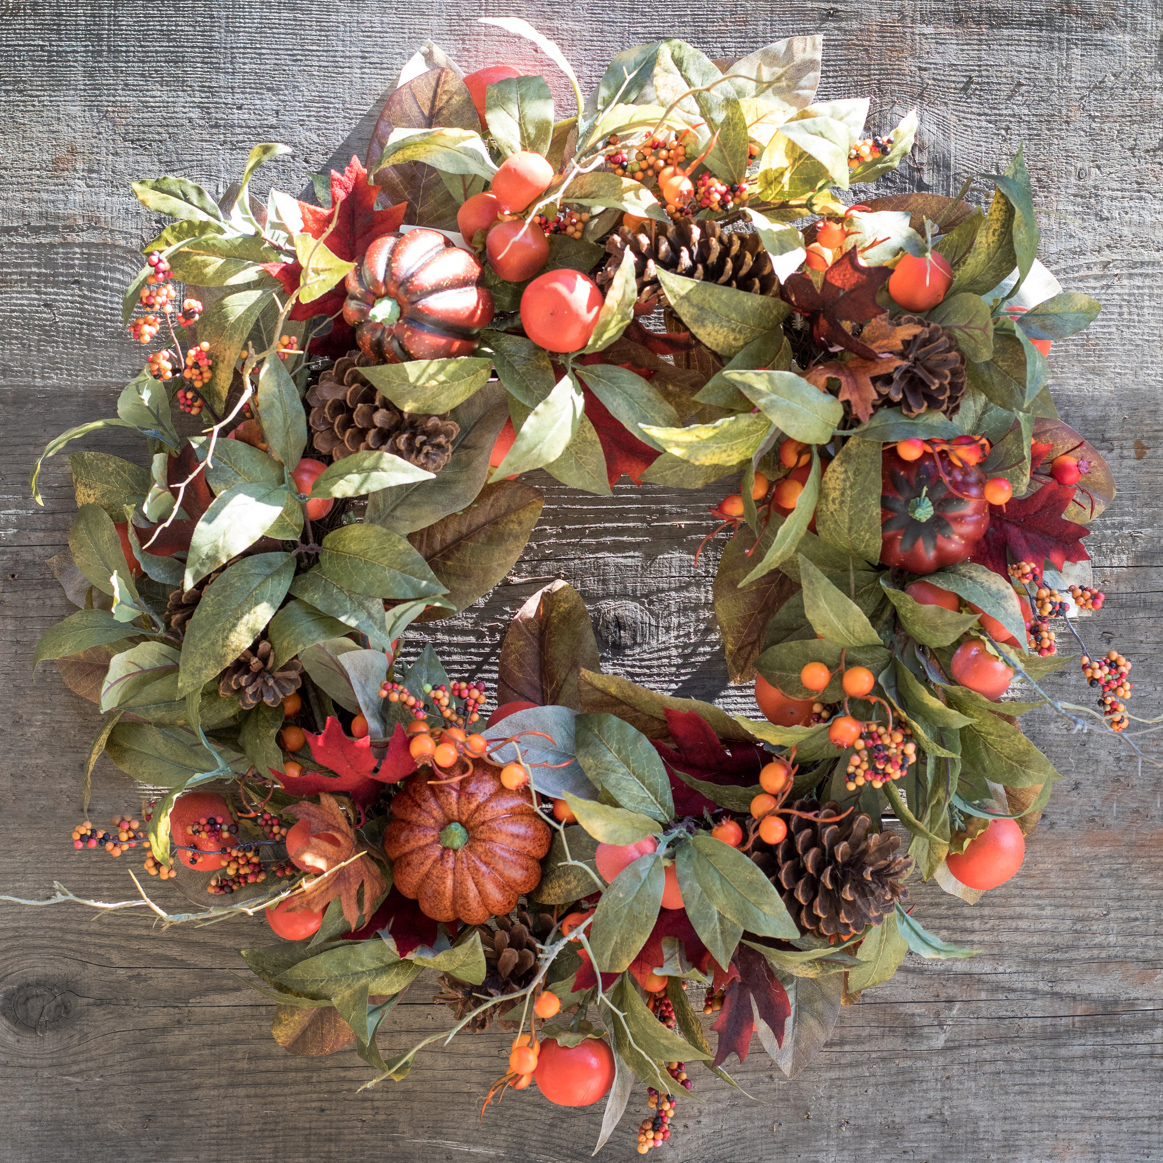 An image of a fall wreath containing pumpkins, pinecones and berries